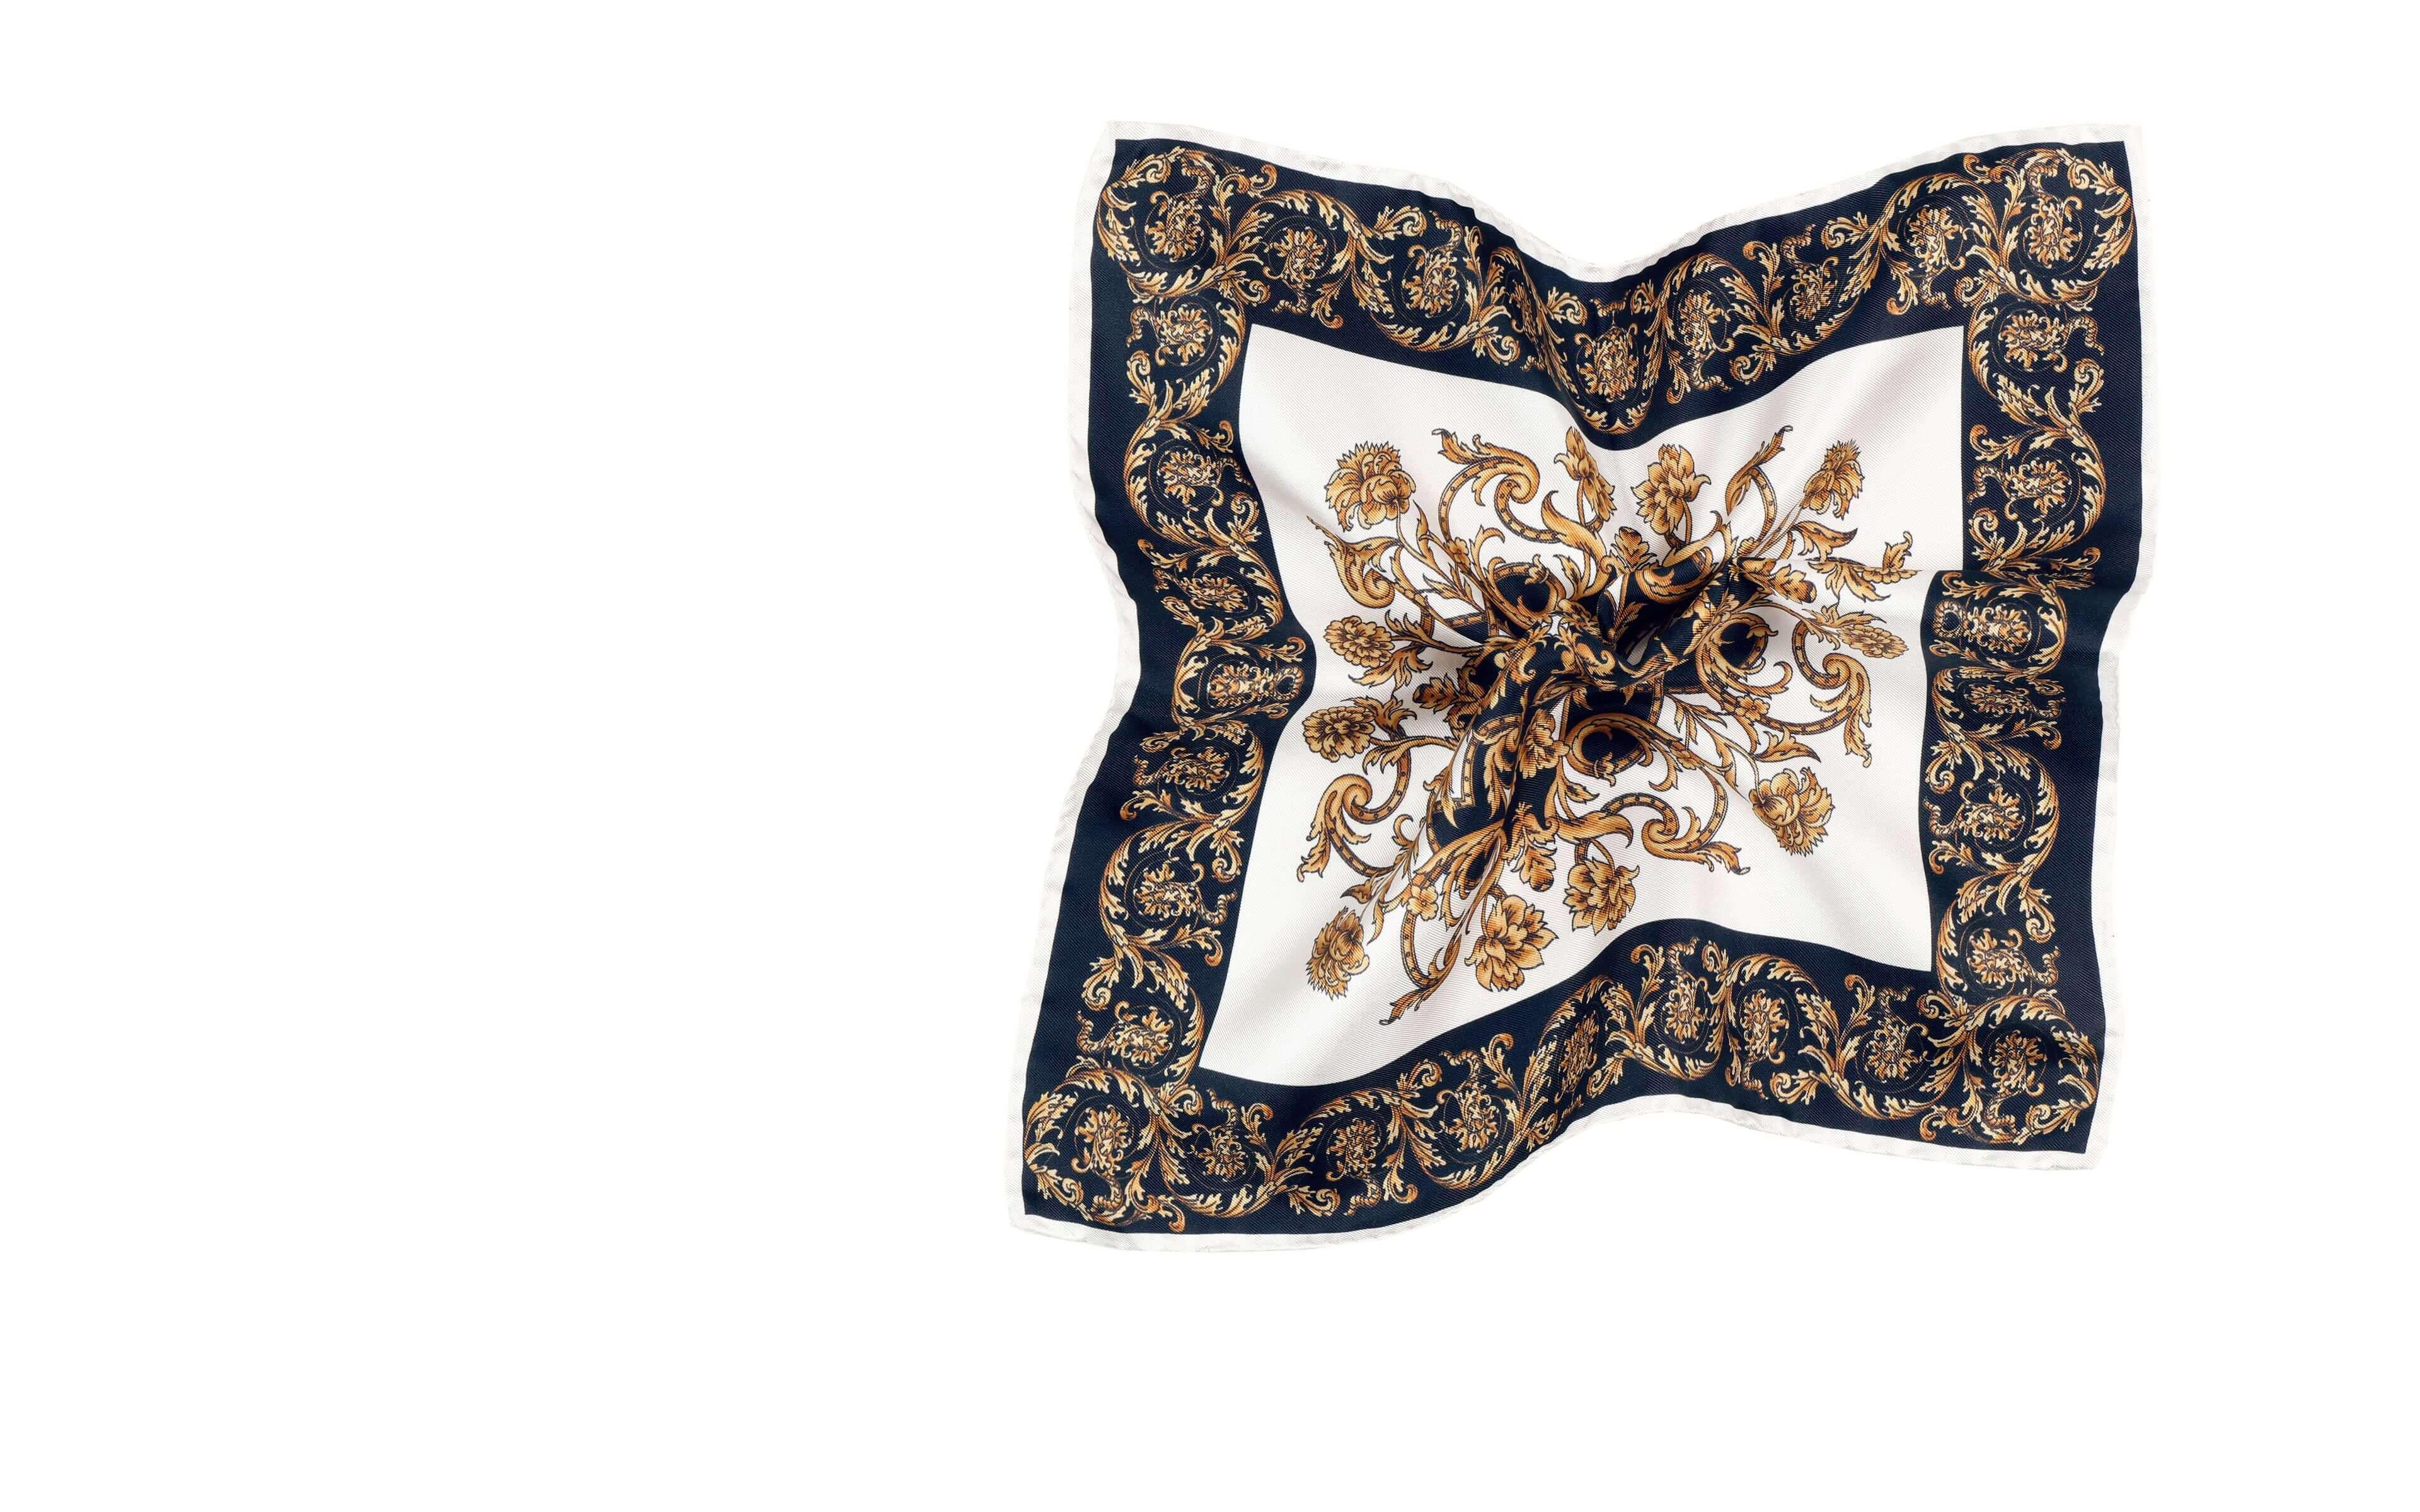 Black and Gold Patterned Italian 100% Silk Pocket Square